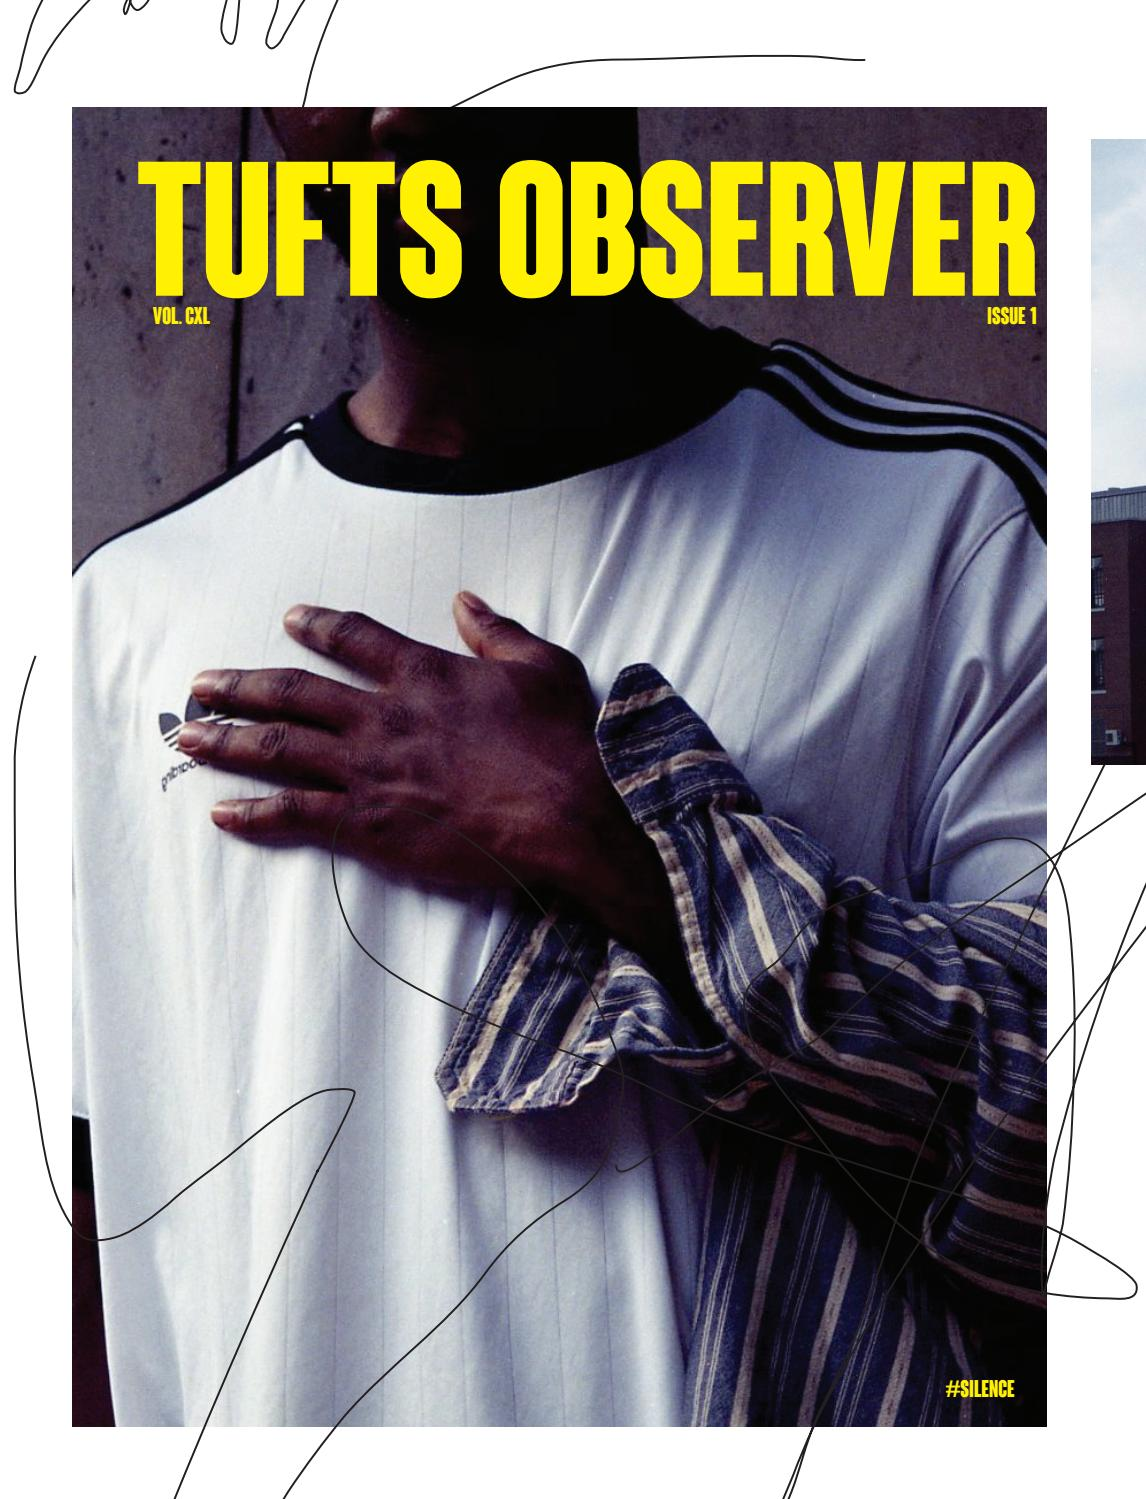 Fall 2017 Issue 1 by Tufts Observer - issuu b1518b2afe